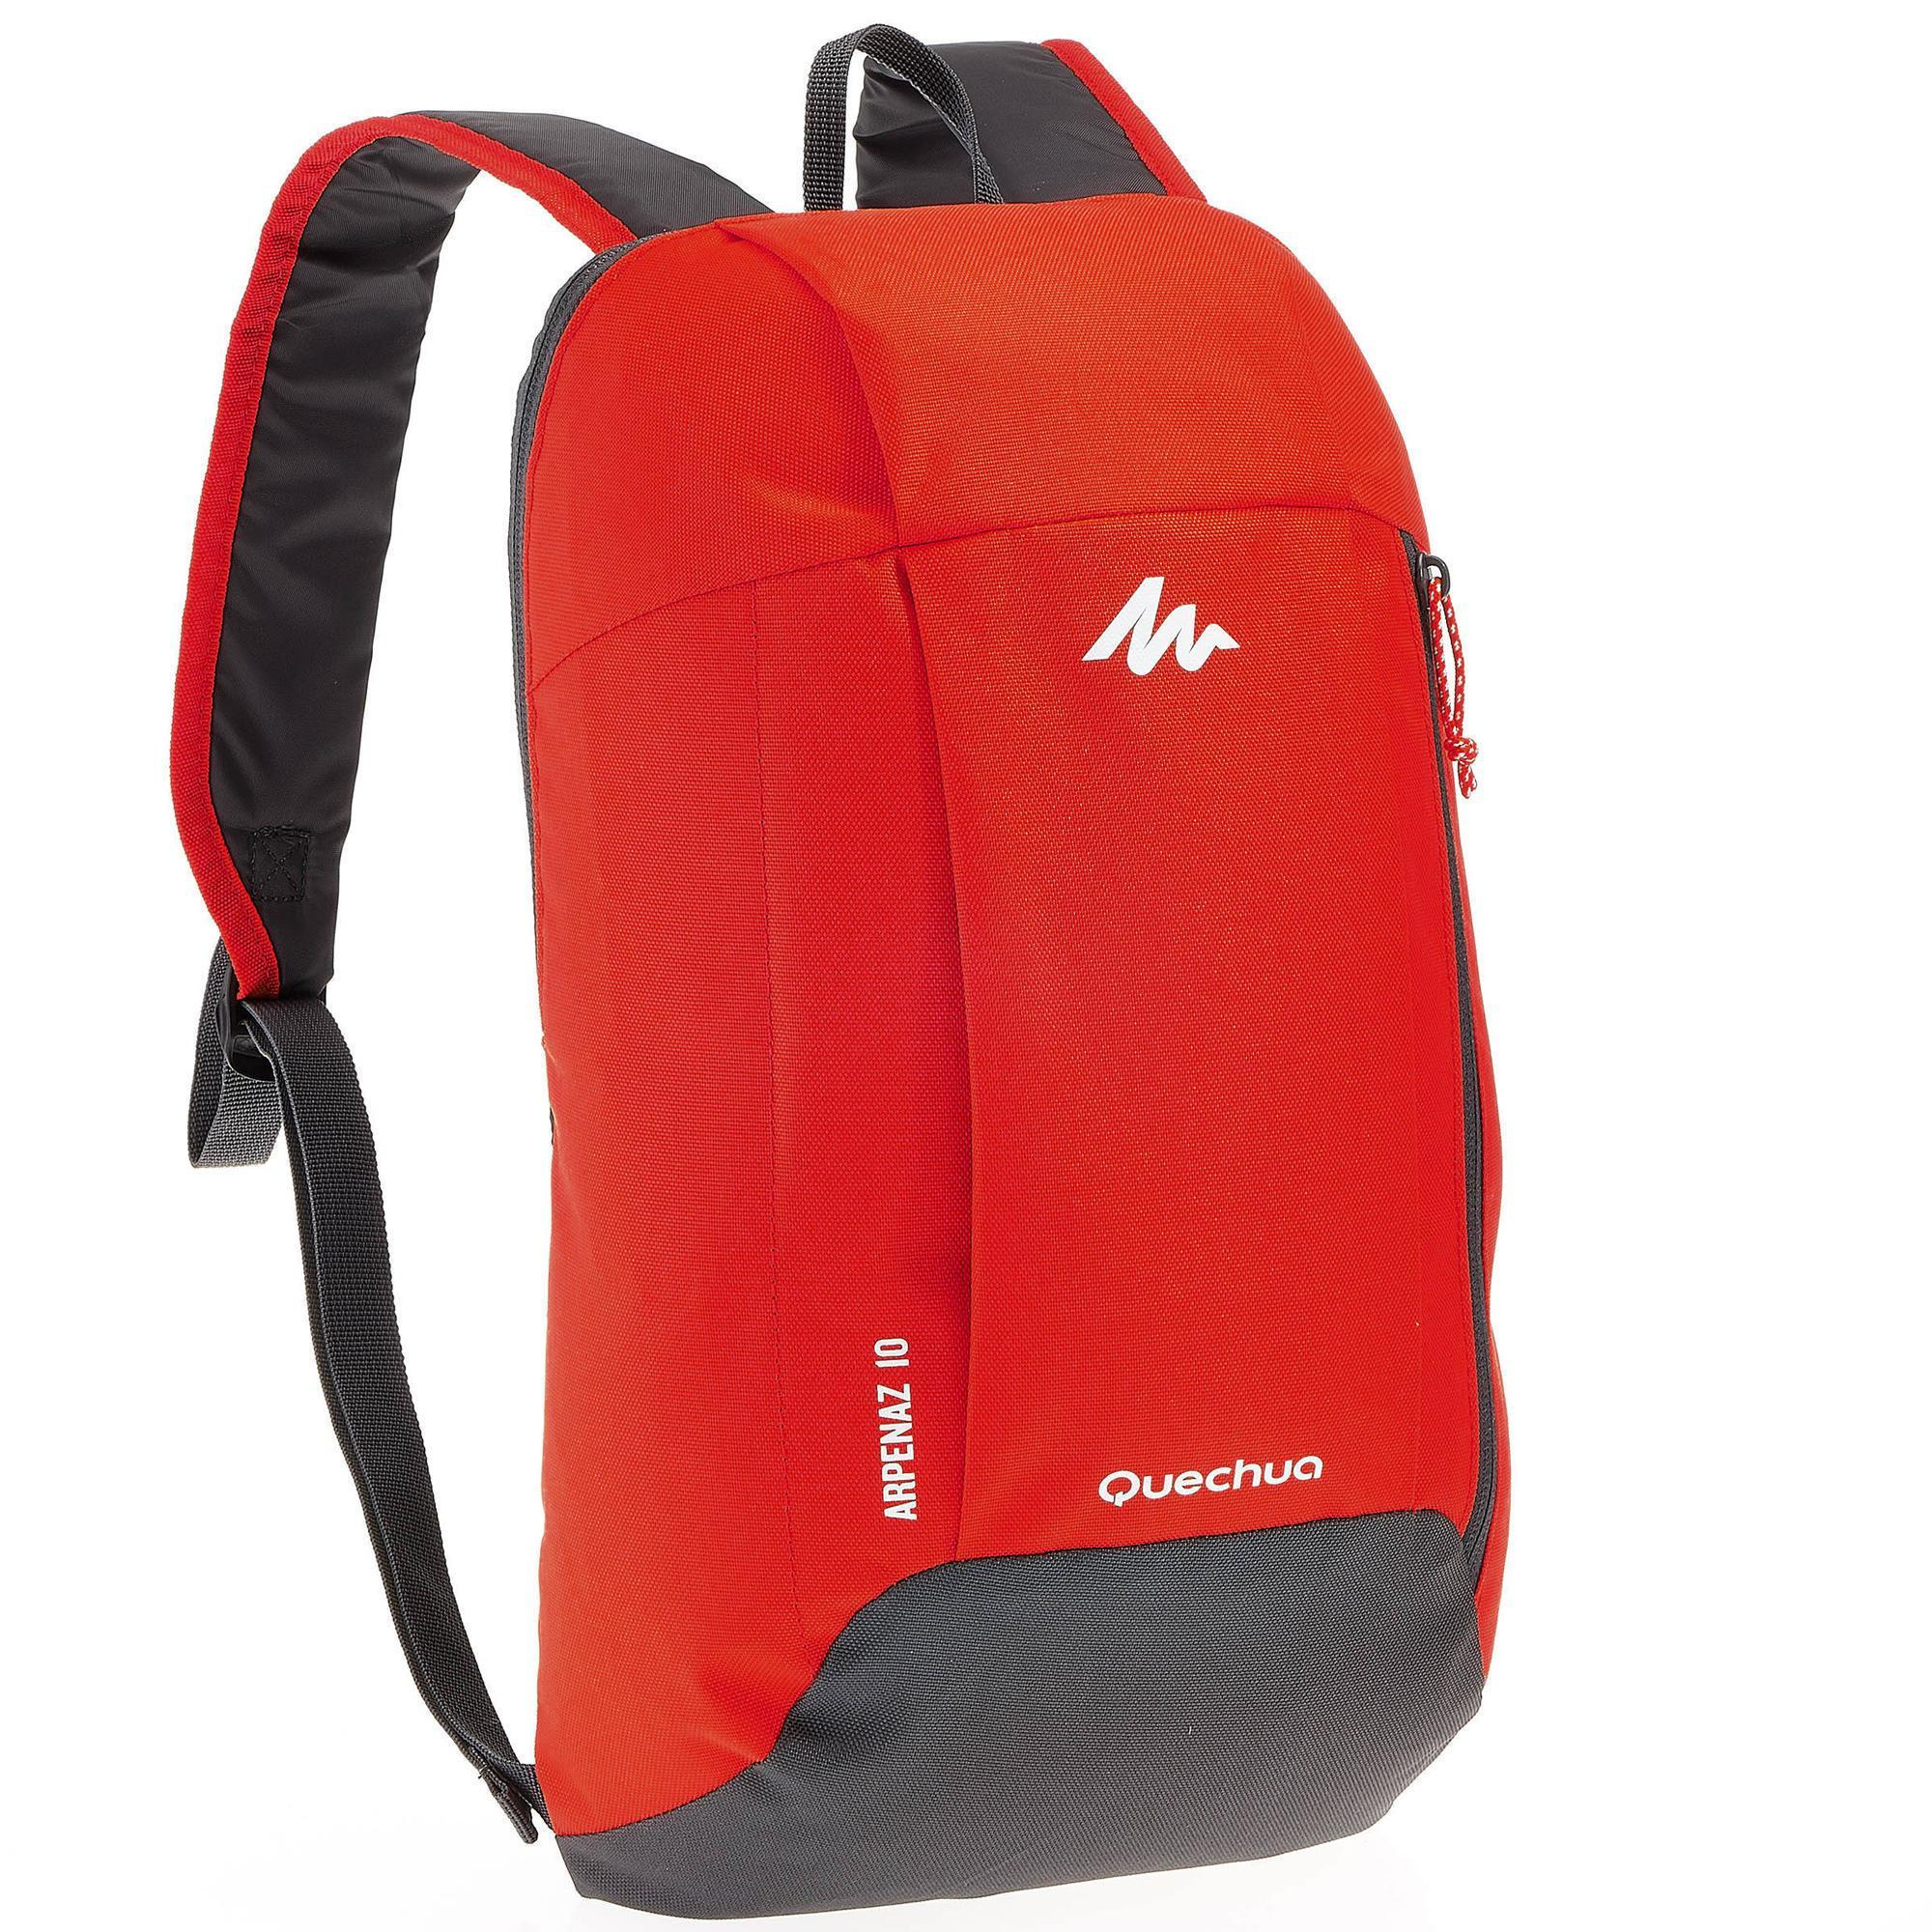 Nh100 10 L Hiking Backpack Red Grey Quechua